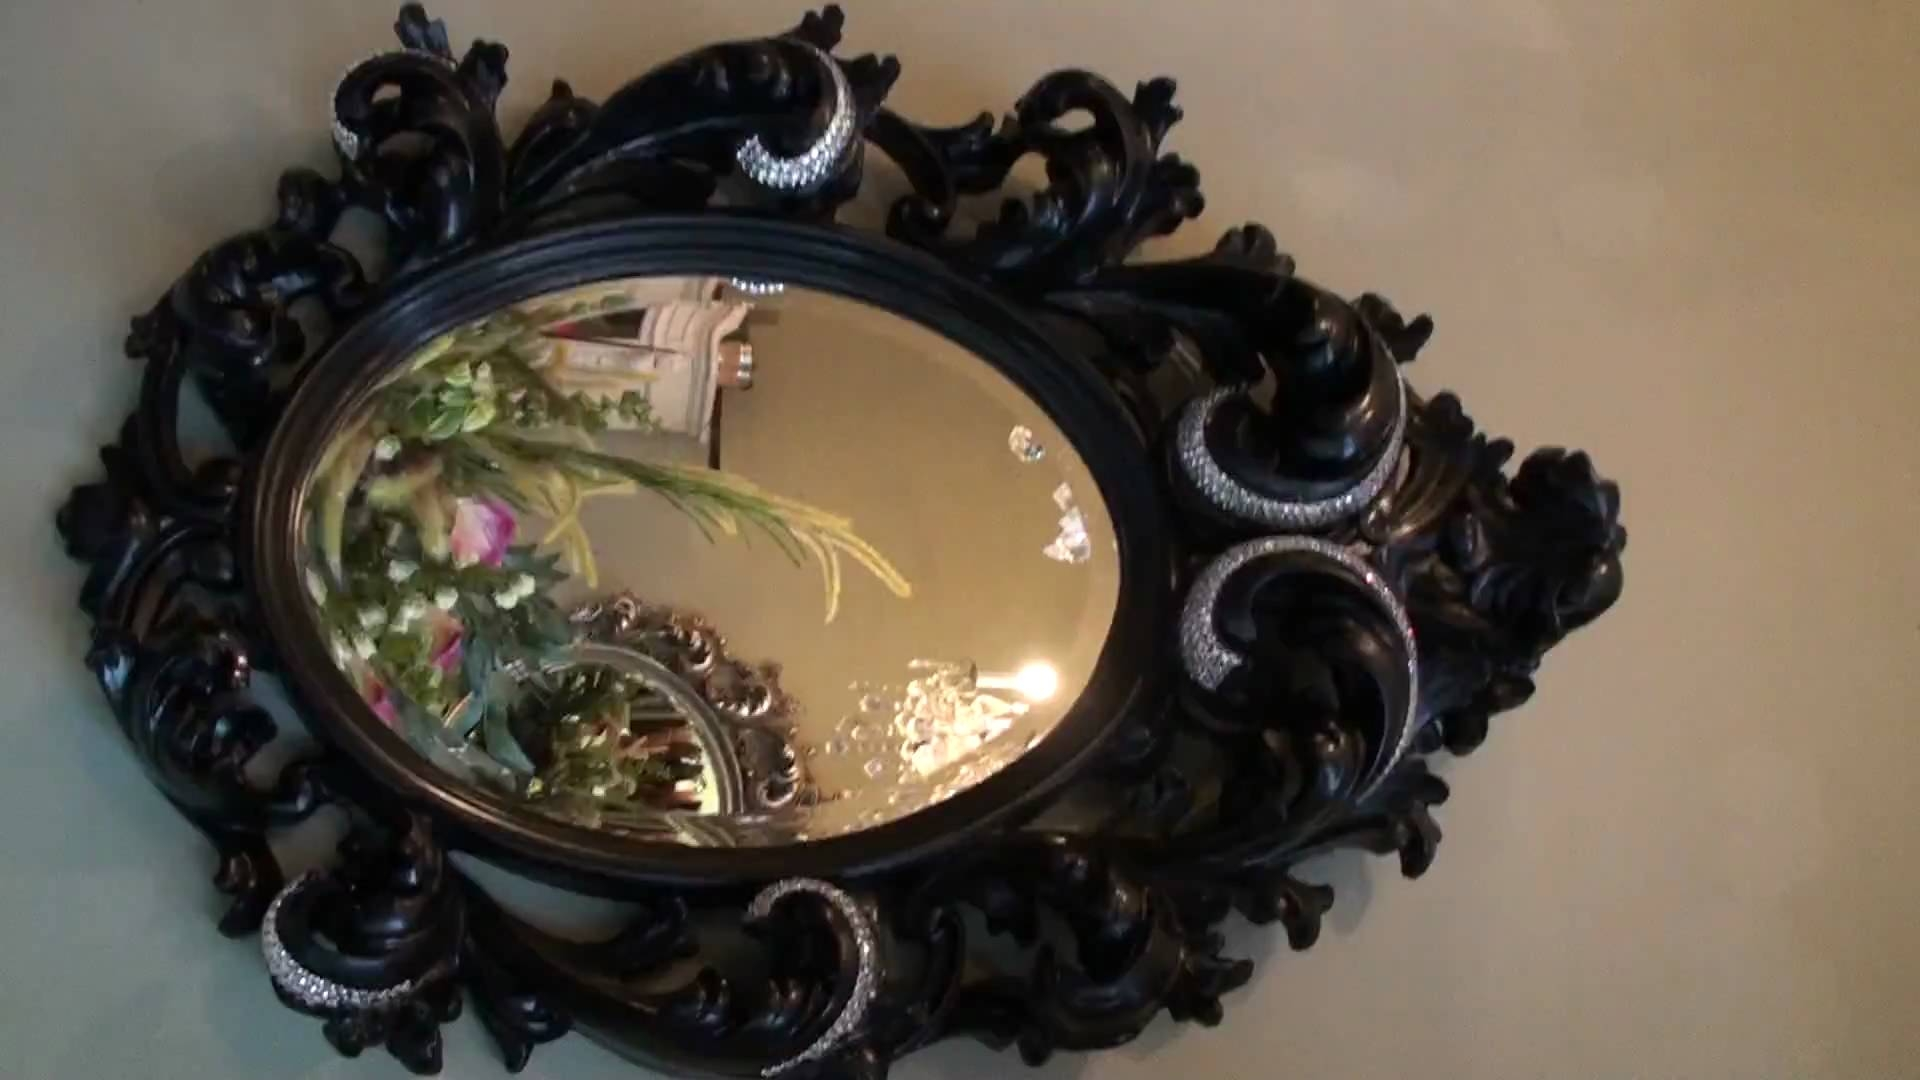 Diamond Encrusted Mirror Most Expensive In The World Youtube Regarding Expensive Mirrors (Image 9 of 15)